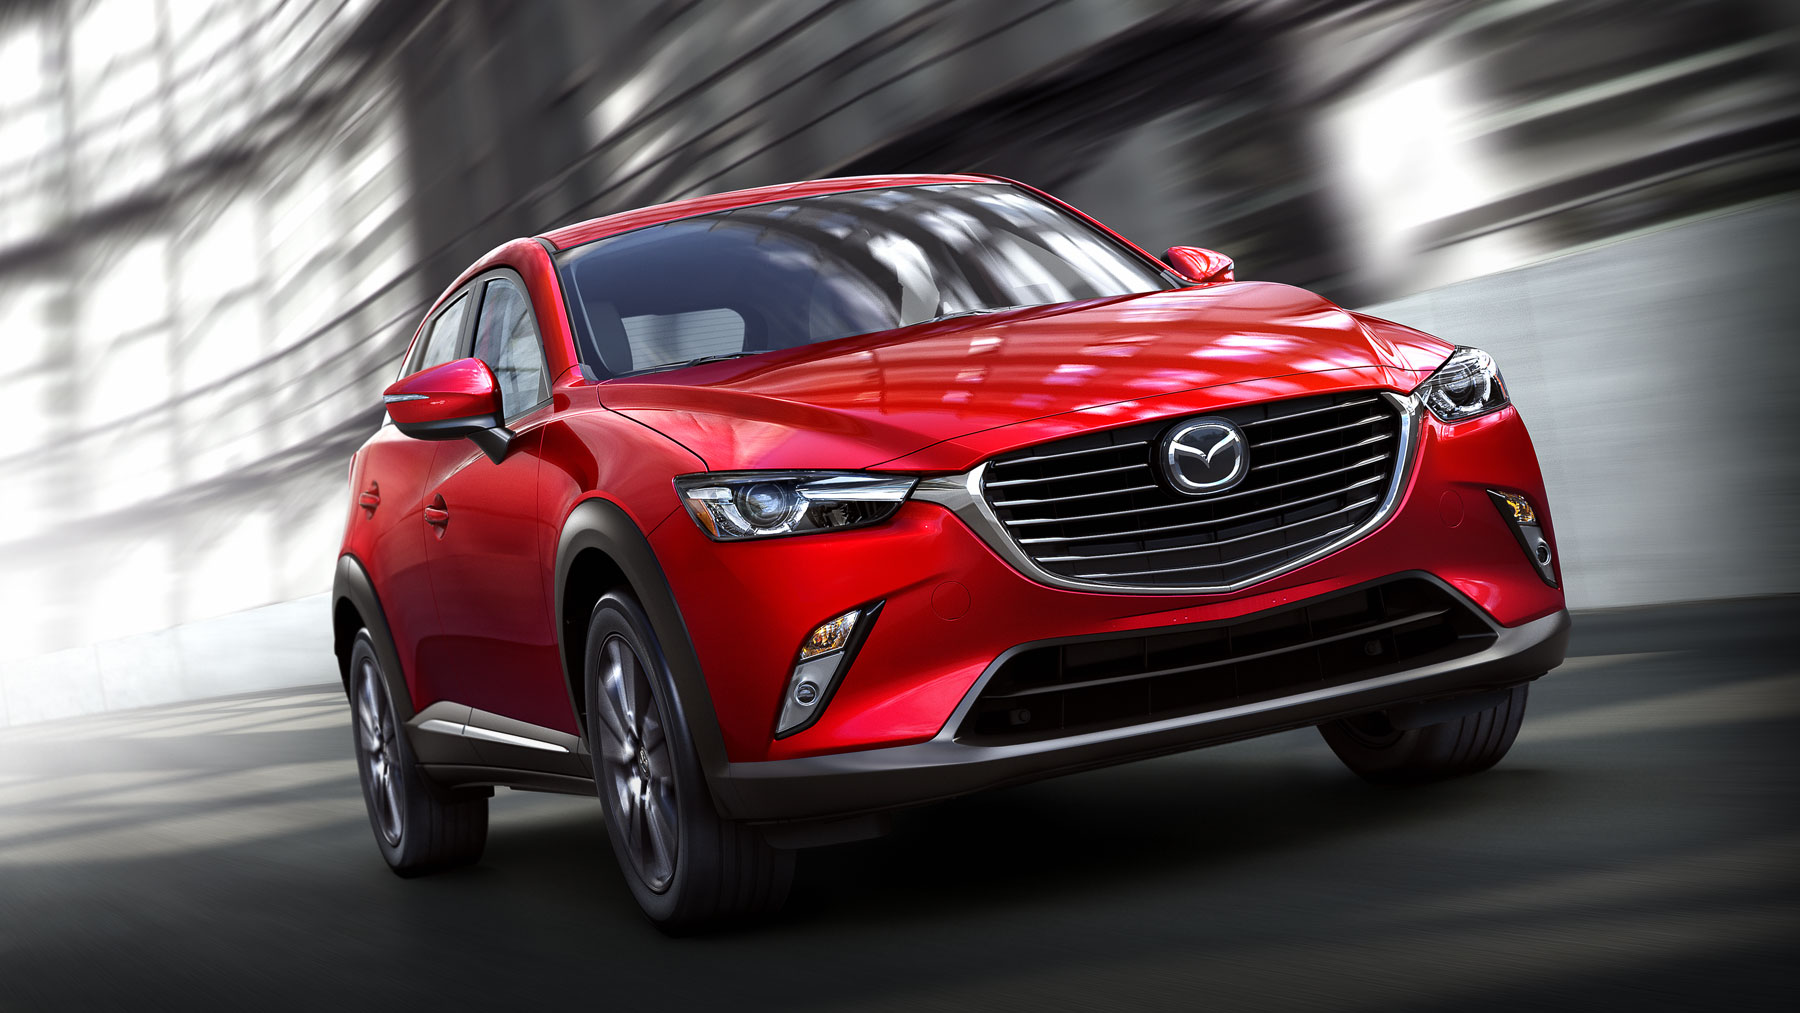 2018 mazda cx 3 price specs interior exterior. Black Bedroom Furniture Sets. Home Design Ideas